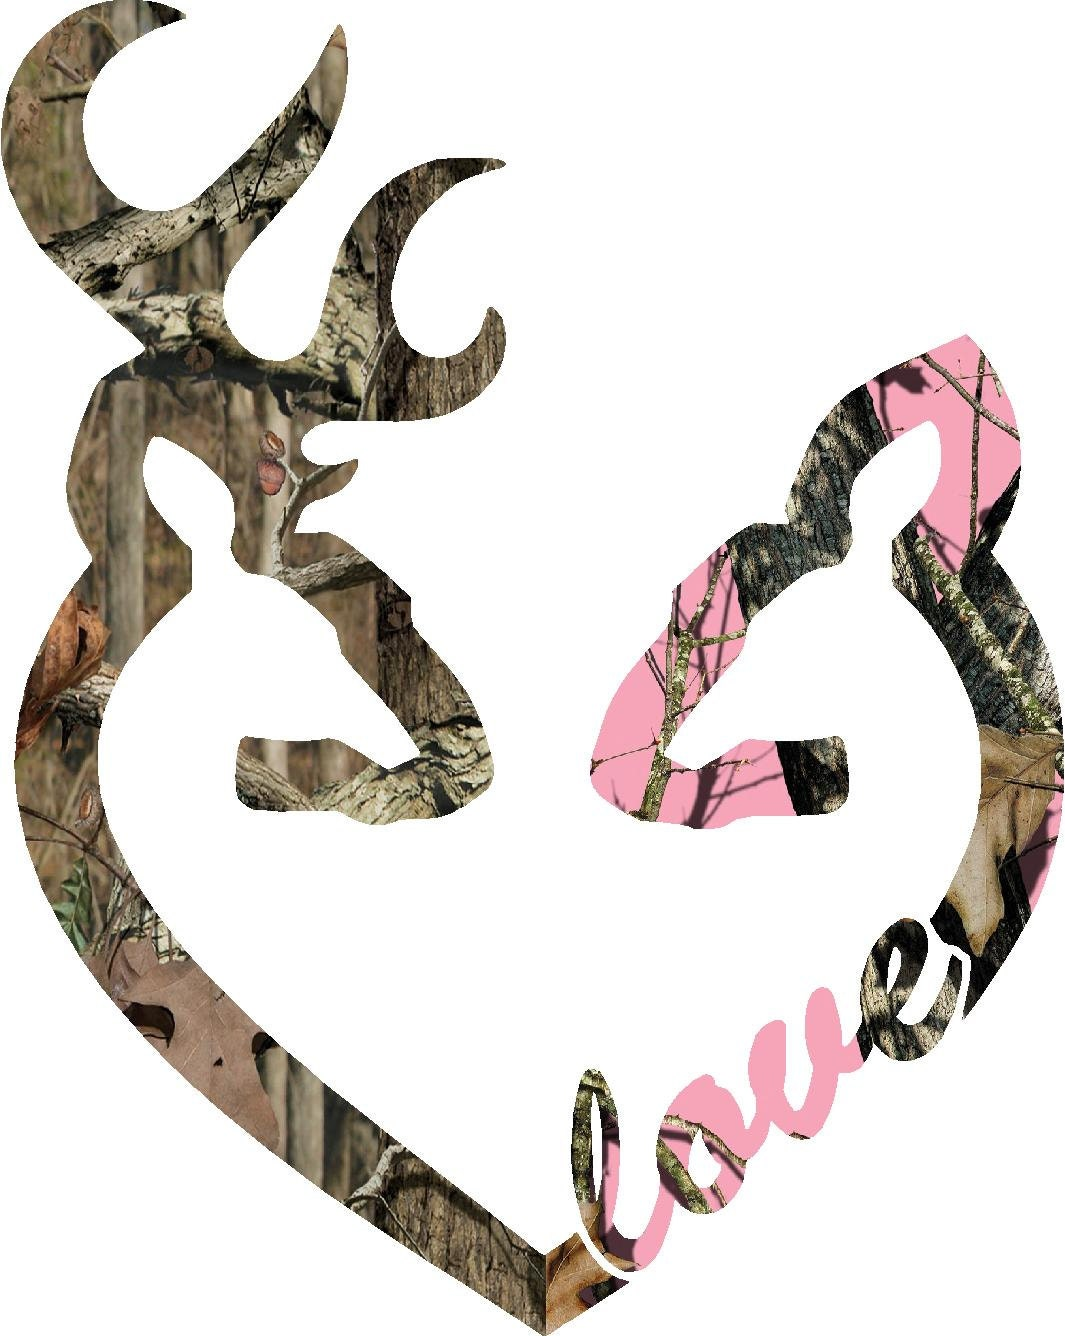 6 browning style camo buck and pink camo doe love heart